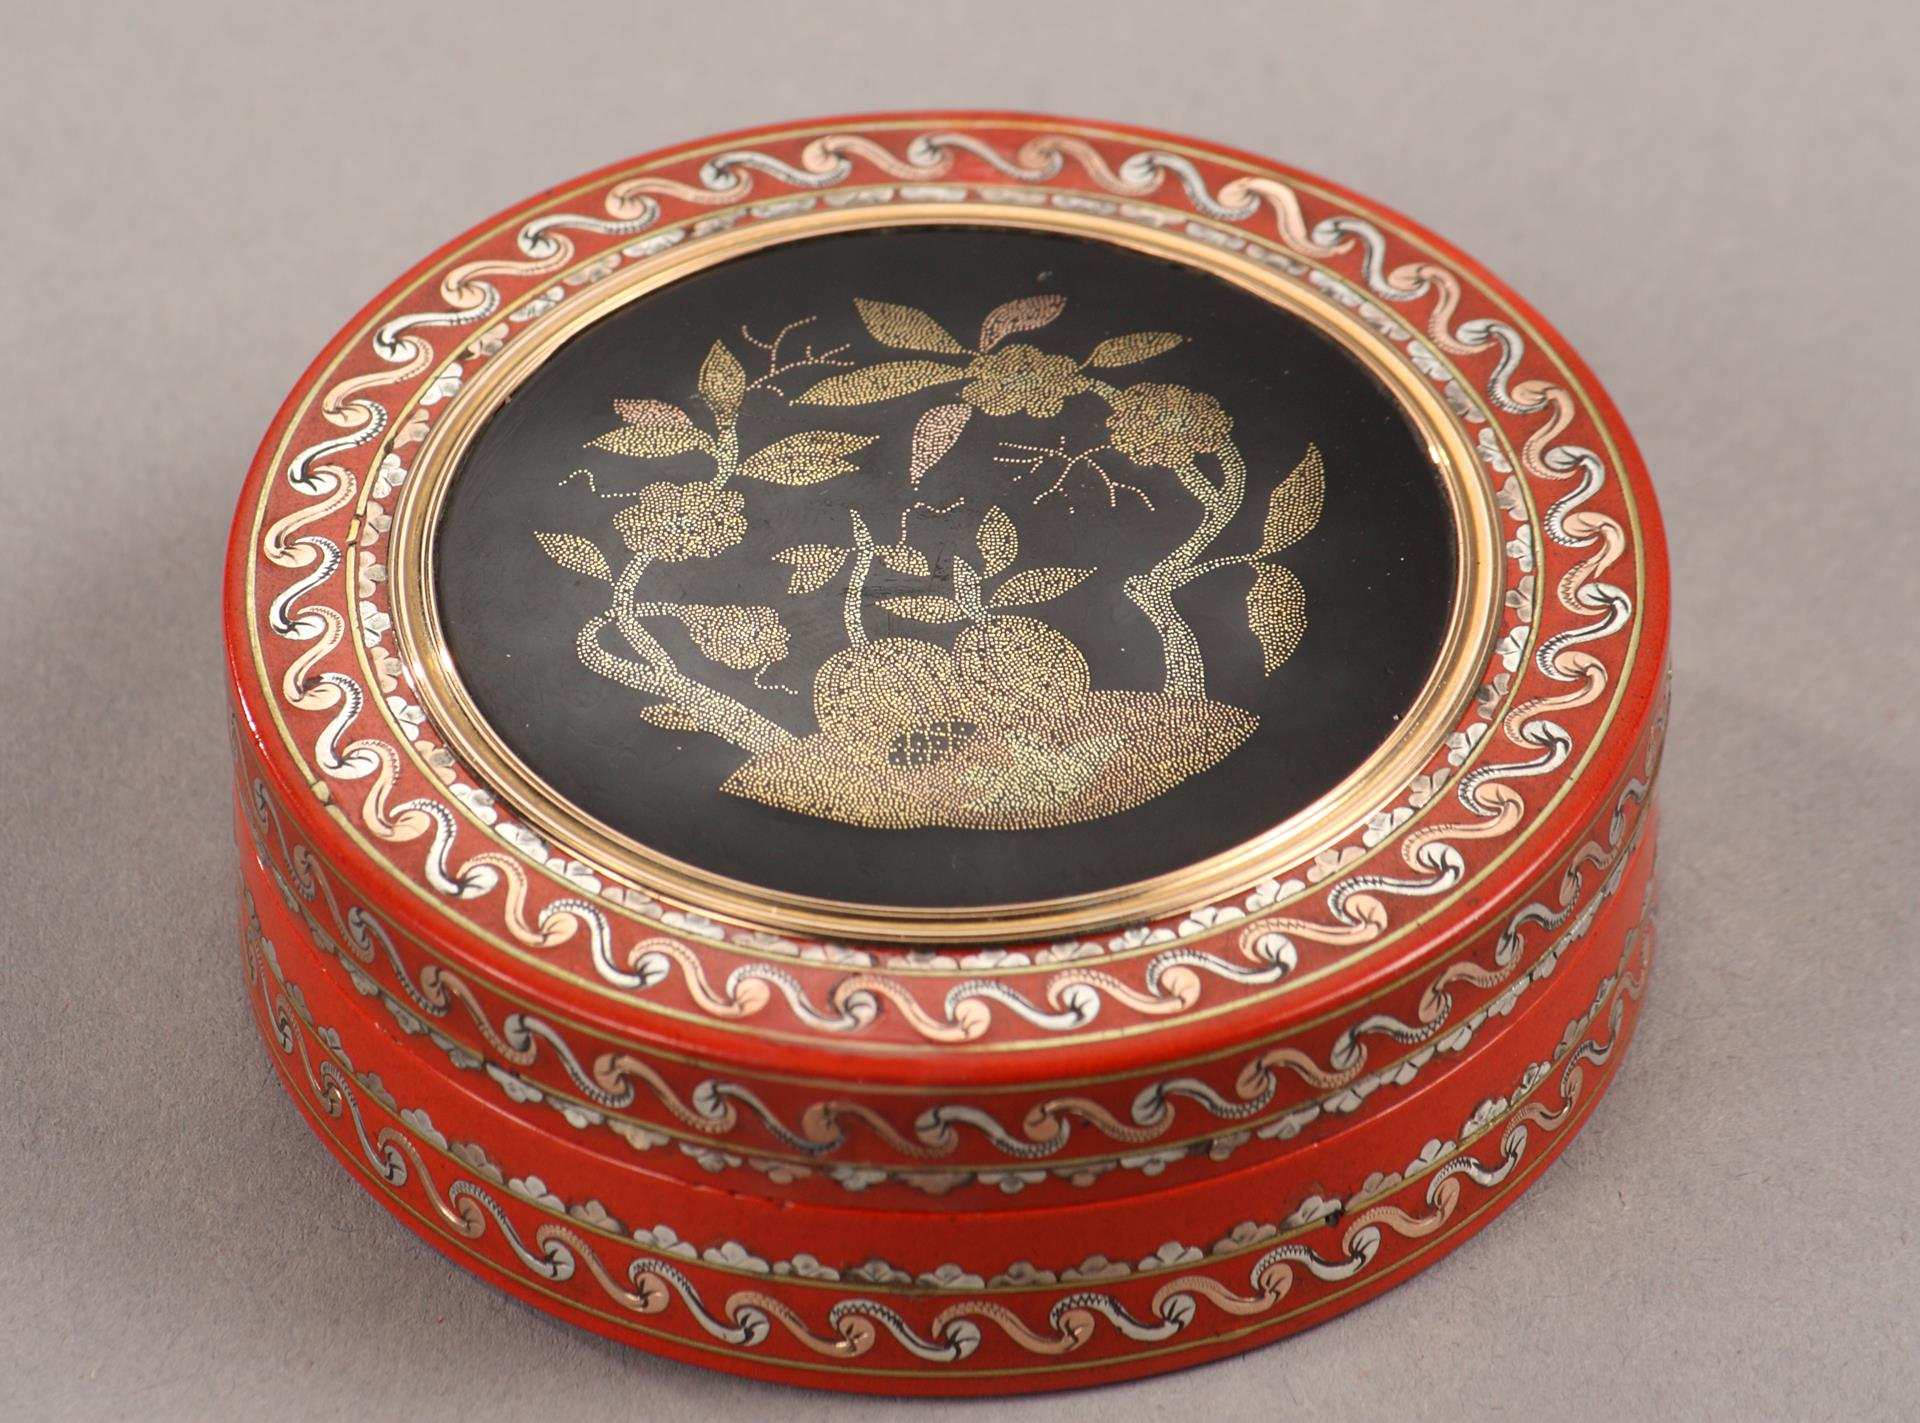 VARNISH AND GOLD PIQUE-WORK BOX. MID-18TH CENTURY.